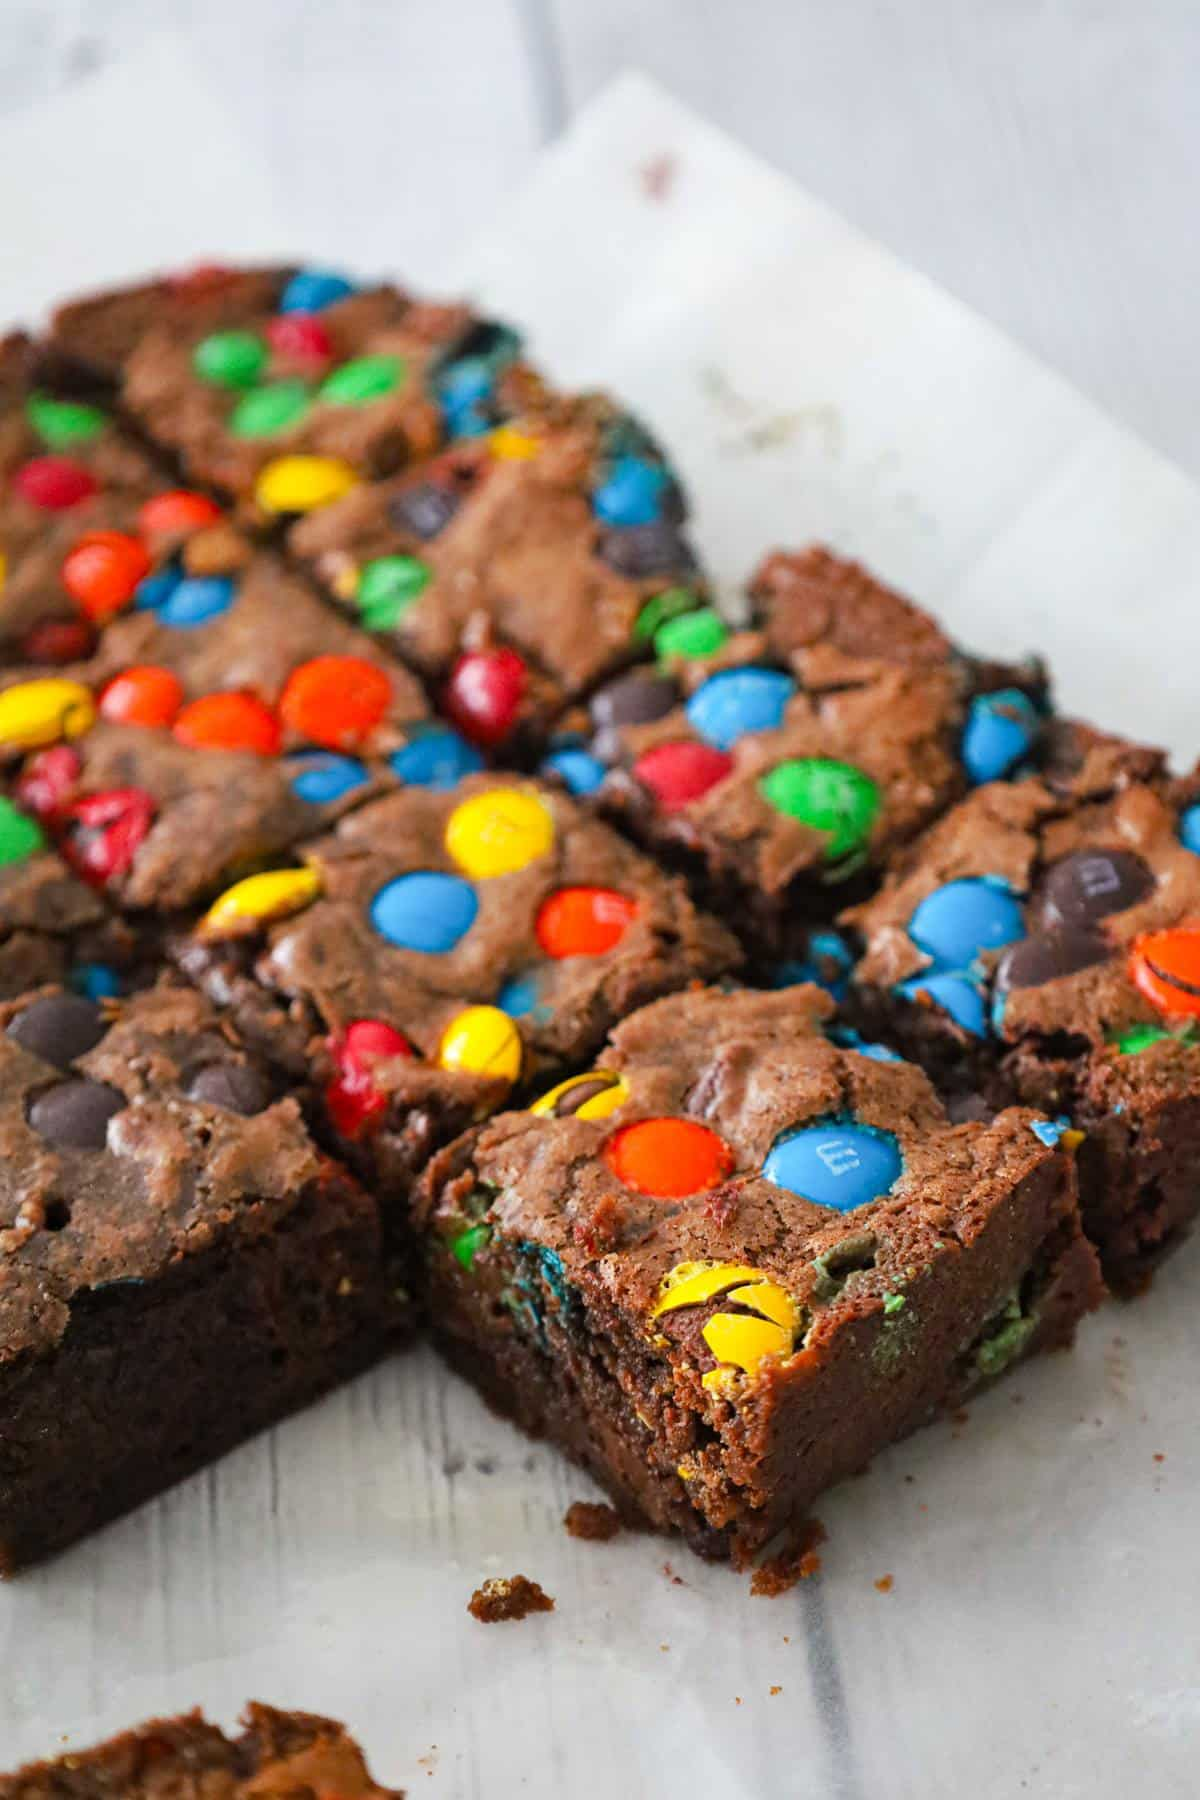 M&M Brownies are delicious fudgy brownies loaded with semi sweet chocolate chips and M&M's candies.